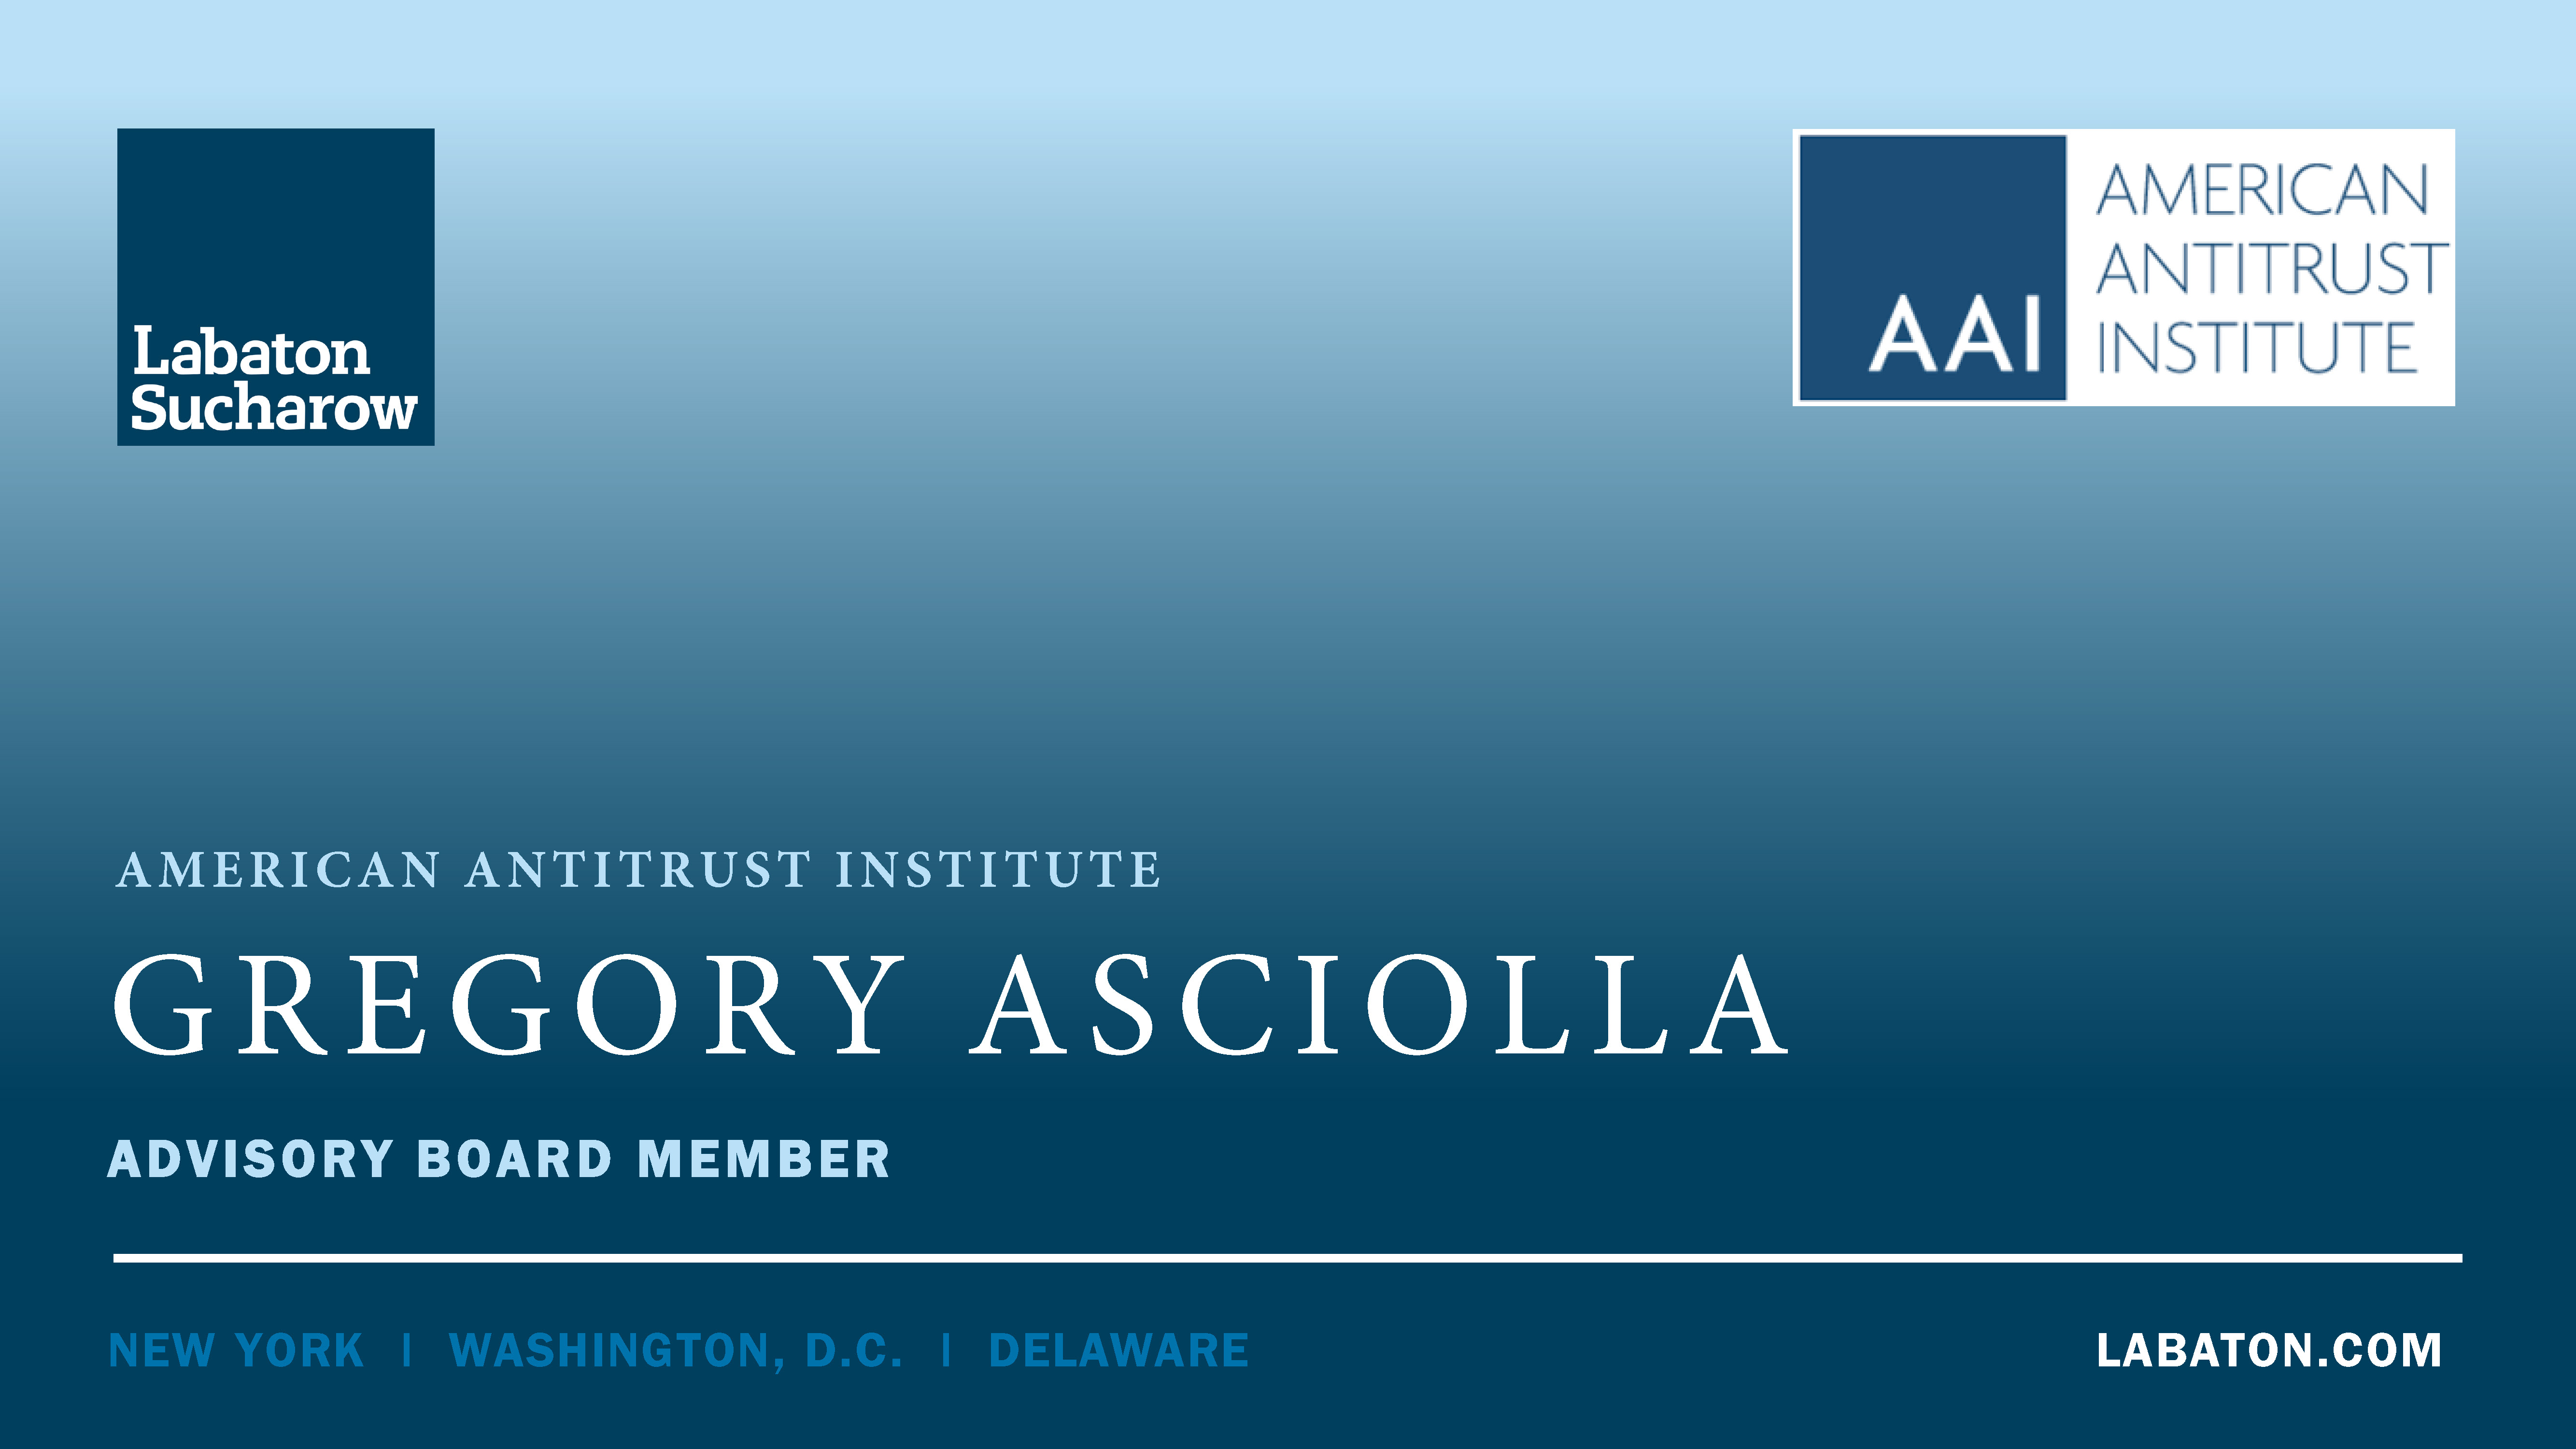 Gregory Asciolla - American Antitrust Advisory Board Member